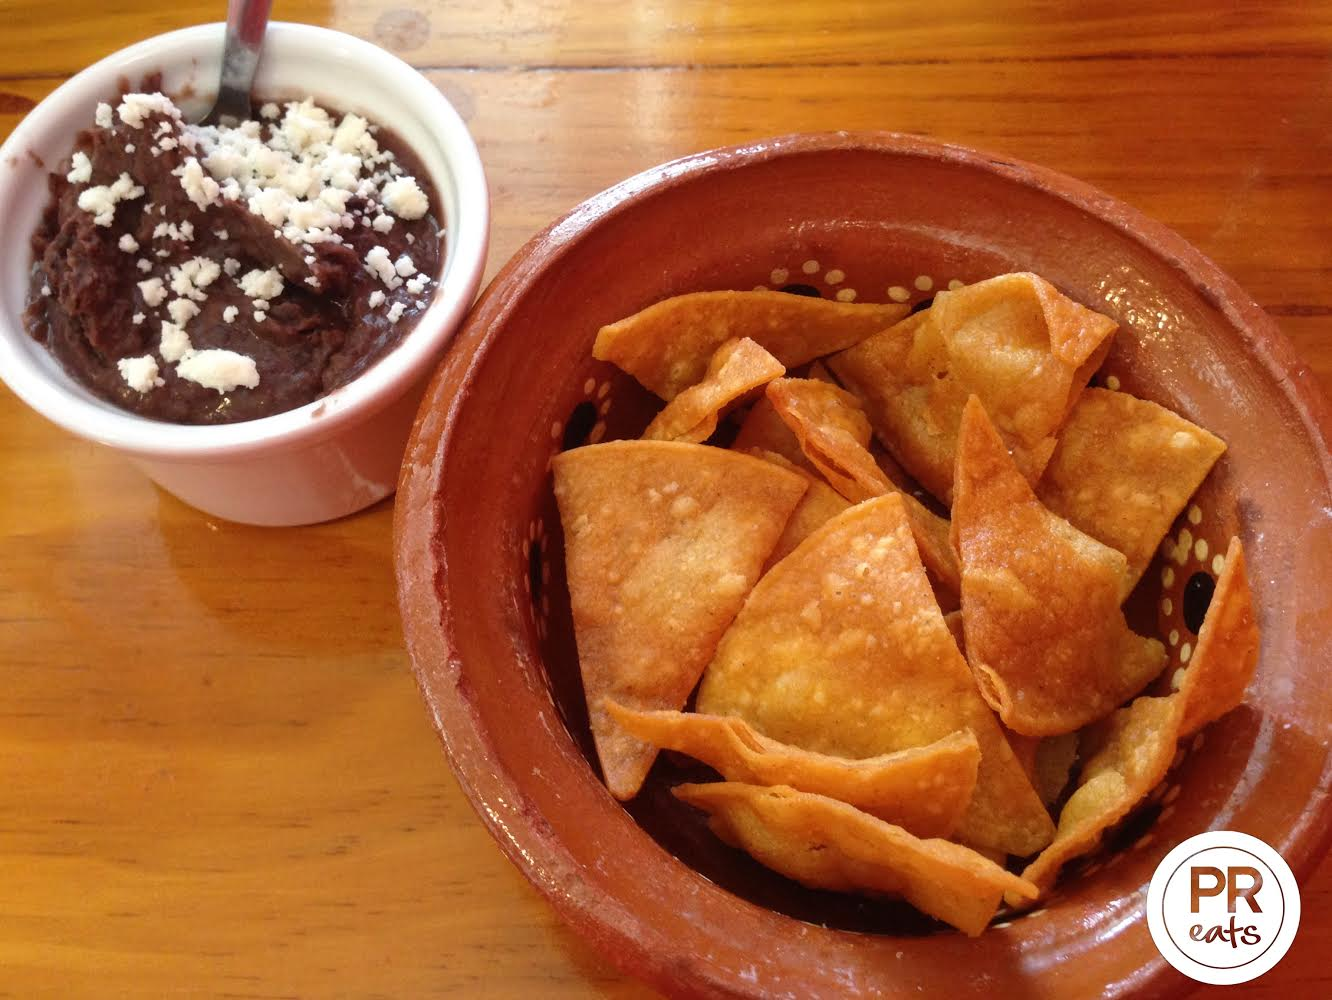 Chips and Refried Beans